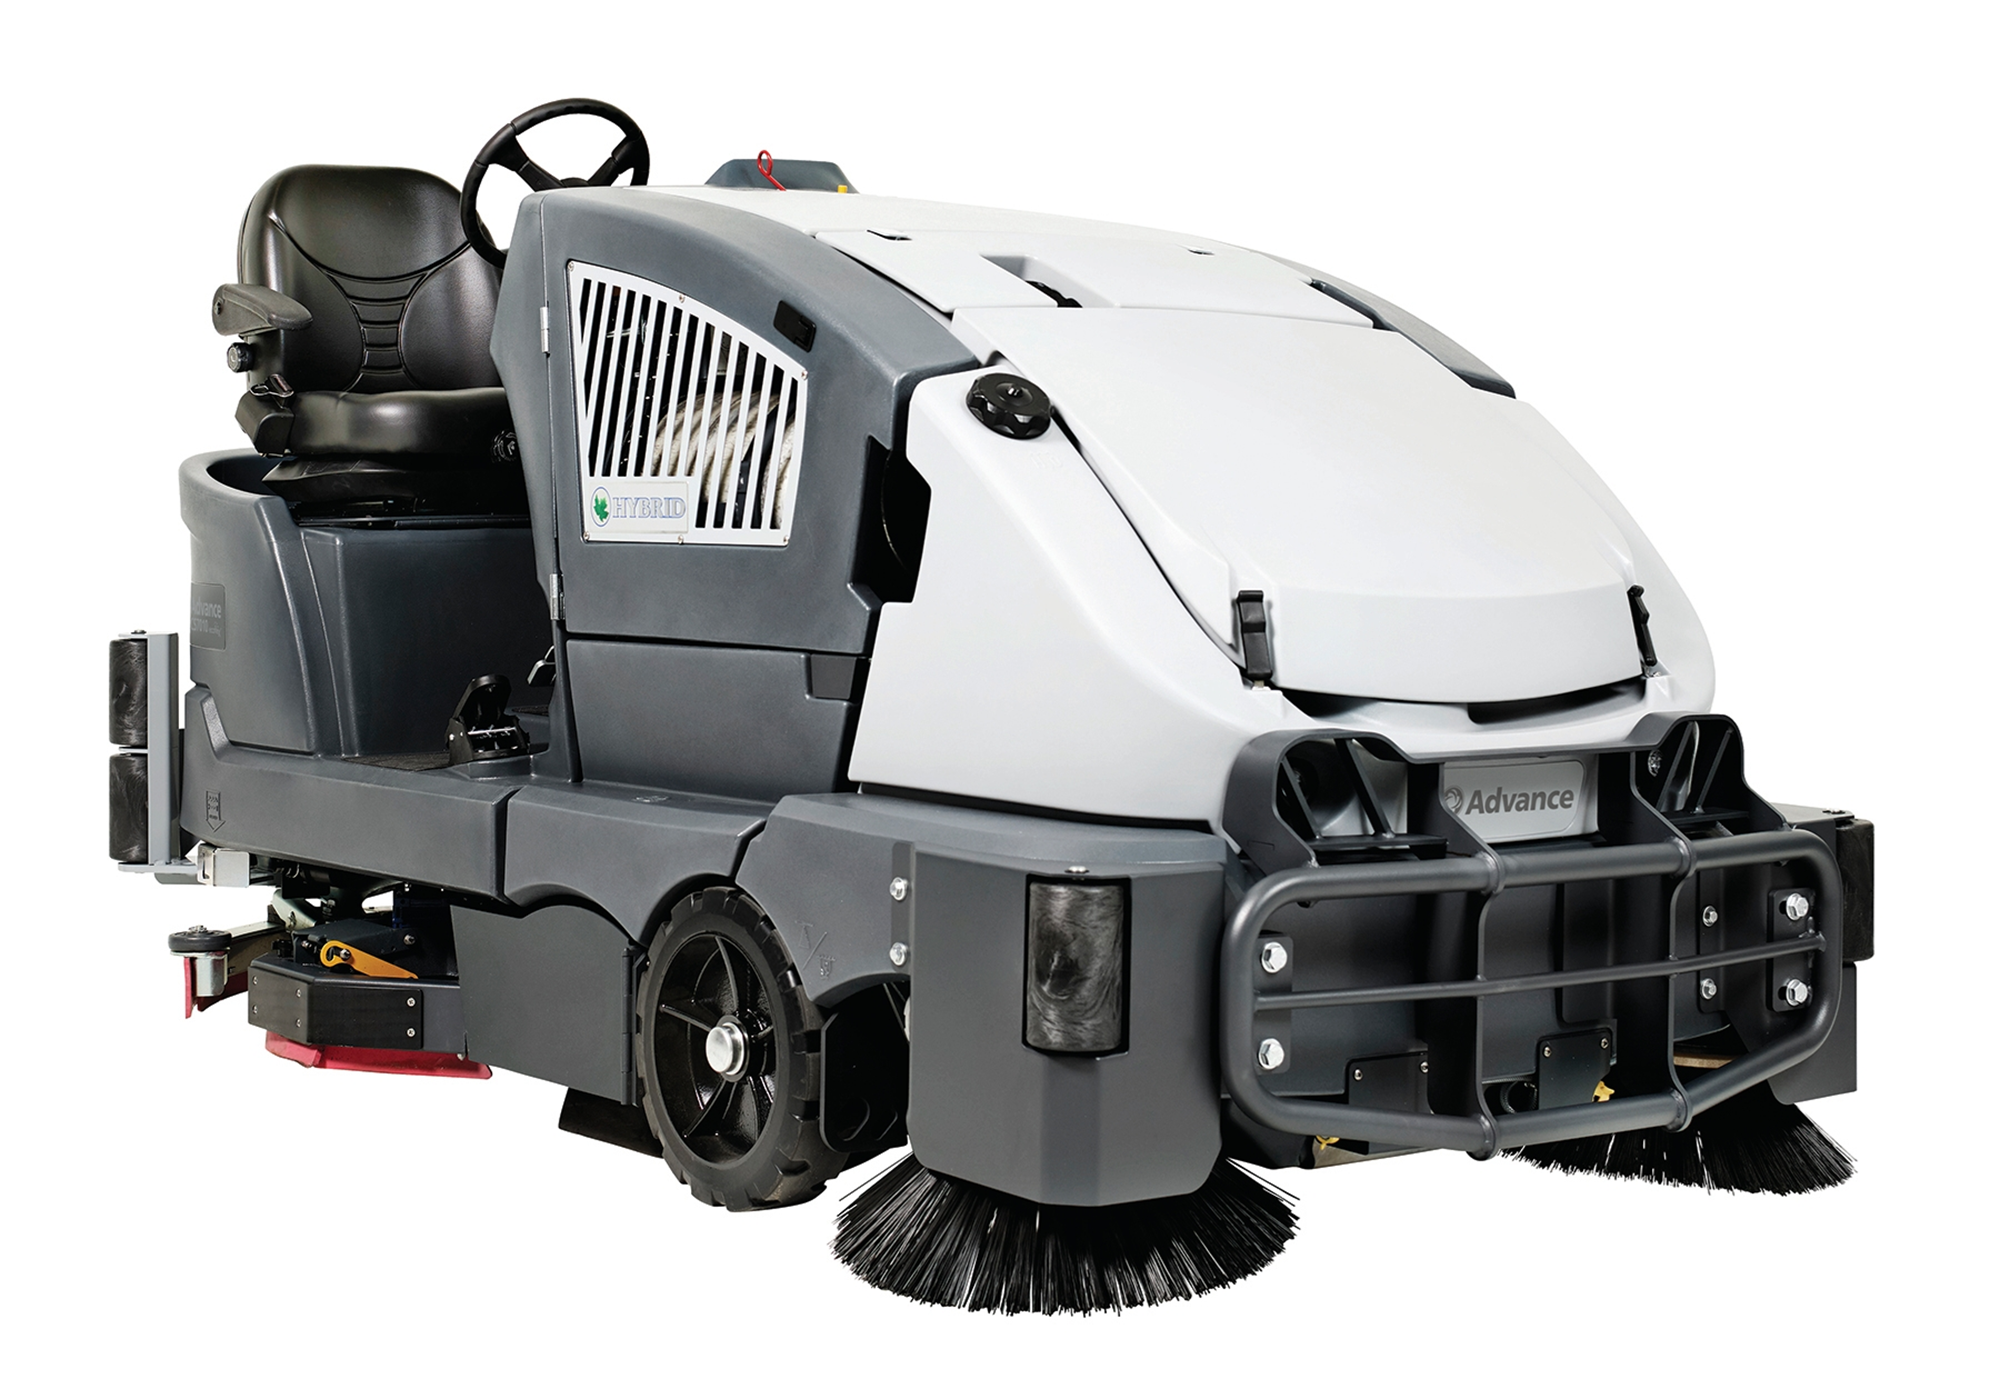 Buy Advance CS7010 hybrid sweeper scrubber Seattle or Tri Cities Washington